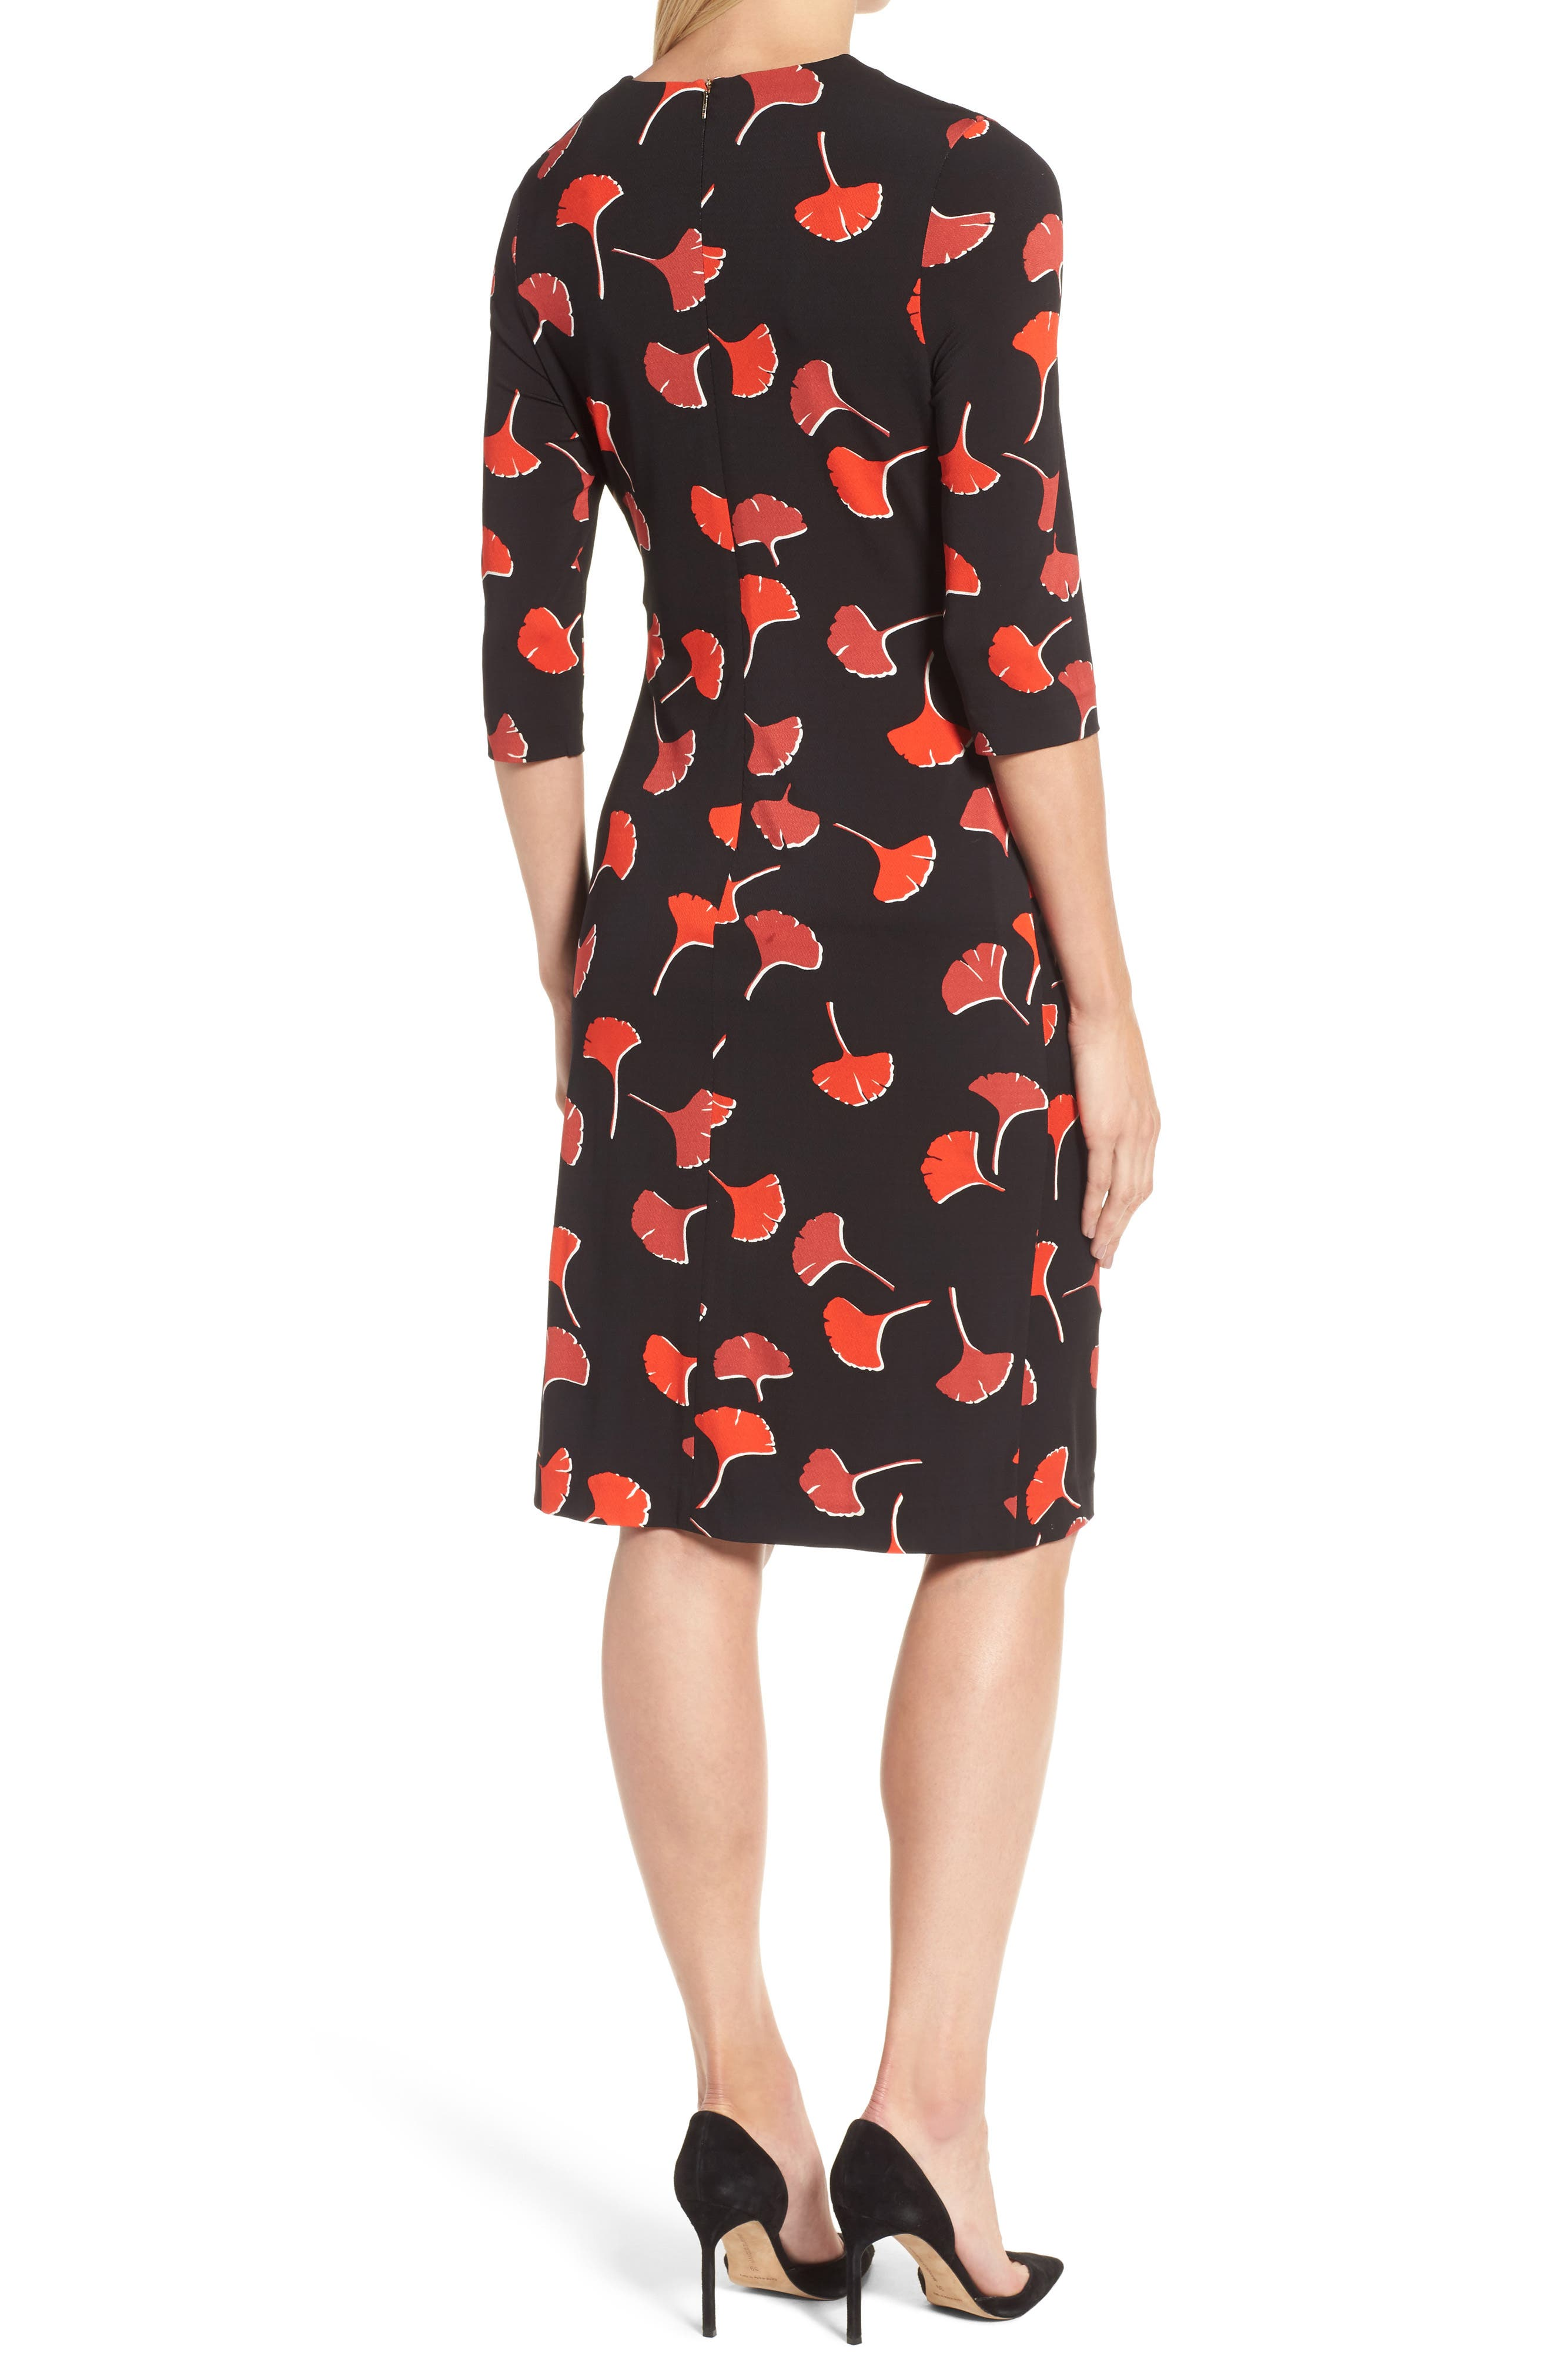 Eseona Print Sheath Dress,                             Alternate thumbnail 2, color,                             005